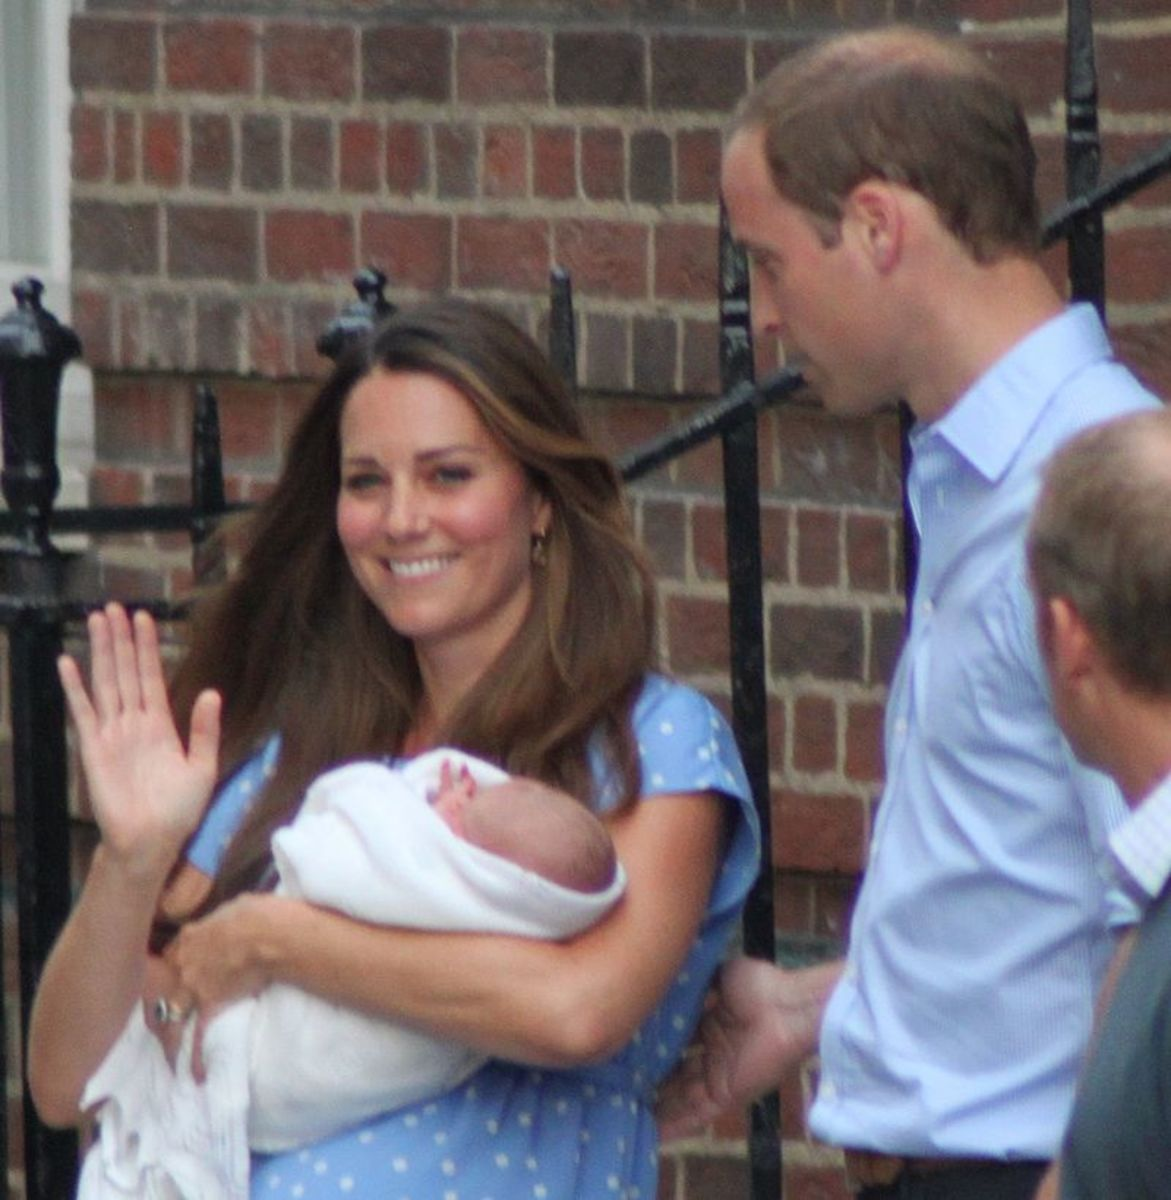 Prince William and Kate Middleton leave hospital with firstborn in 2011.